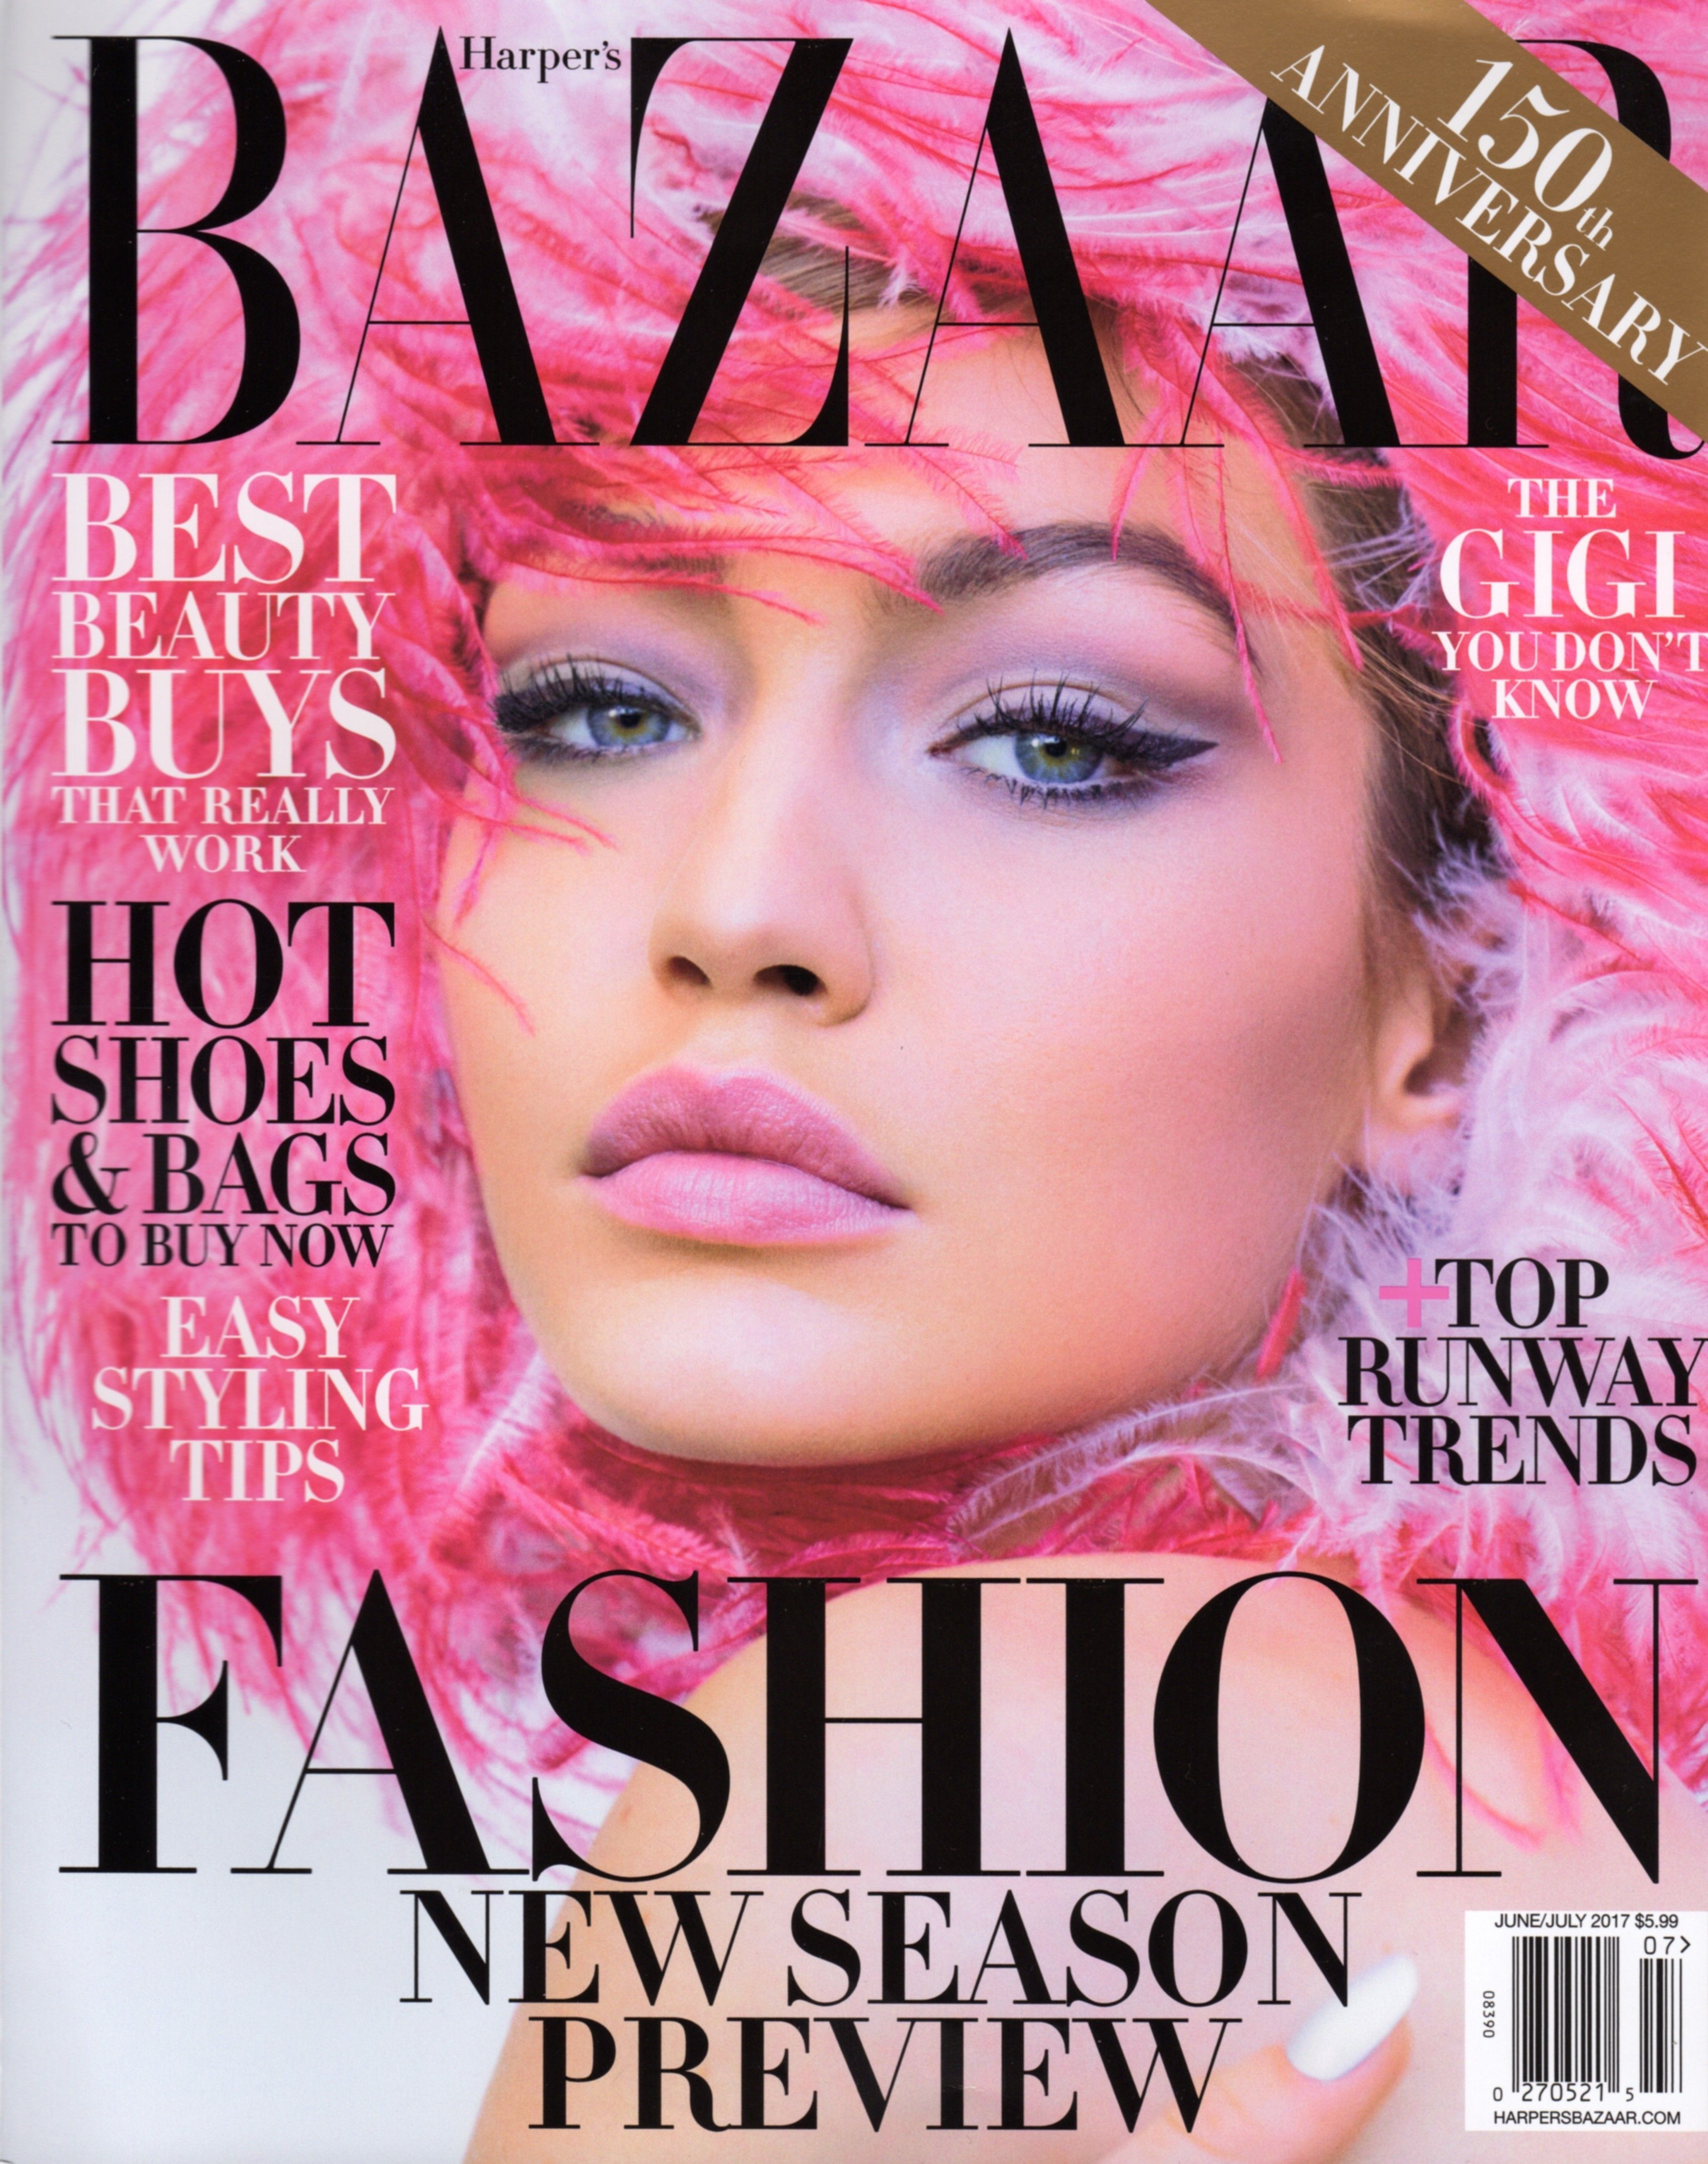 Pin by Greg on Magazine covers   Harpers bazaar covers ...